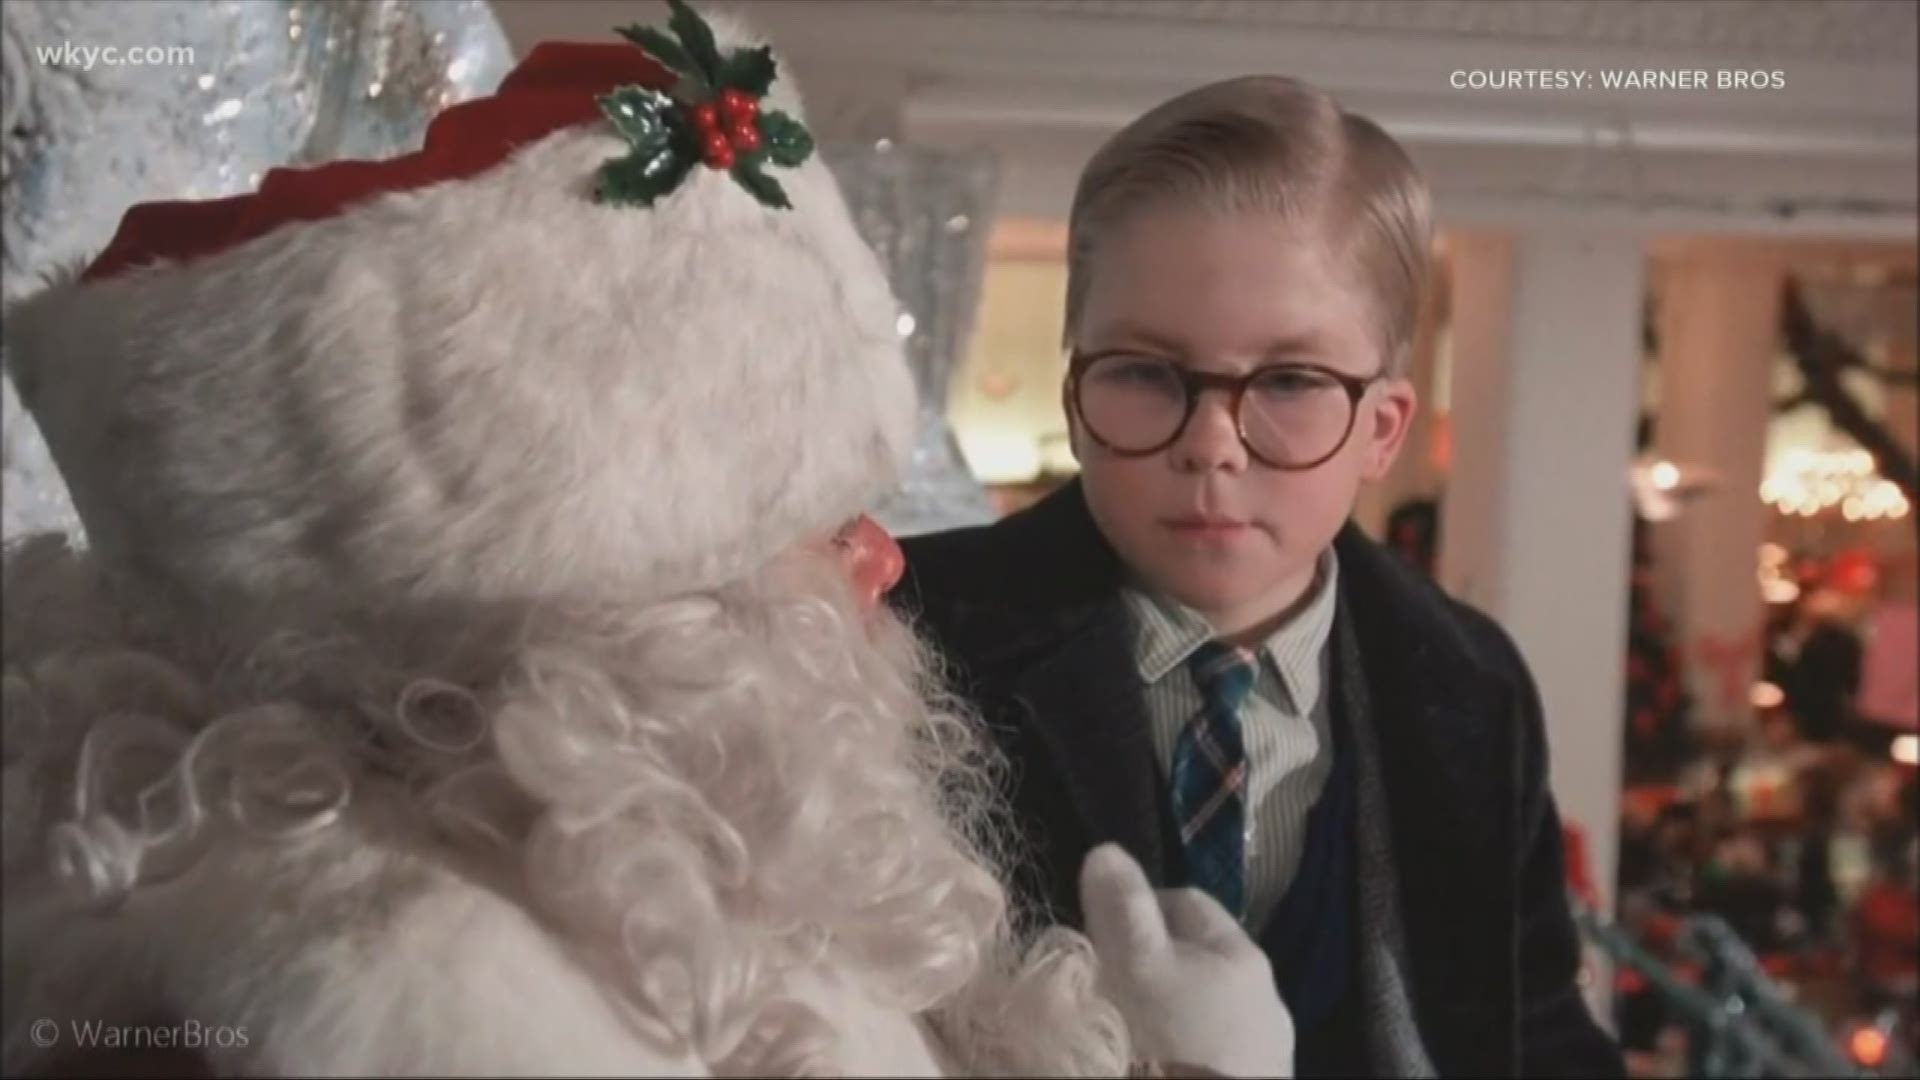 Christmas Story 2020 Tbs Schedule What channel does 'A Christmas Story' marathon air? | wkyc.com